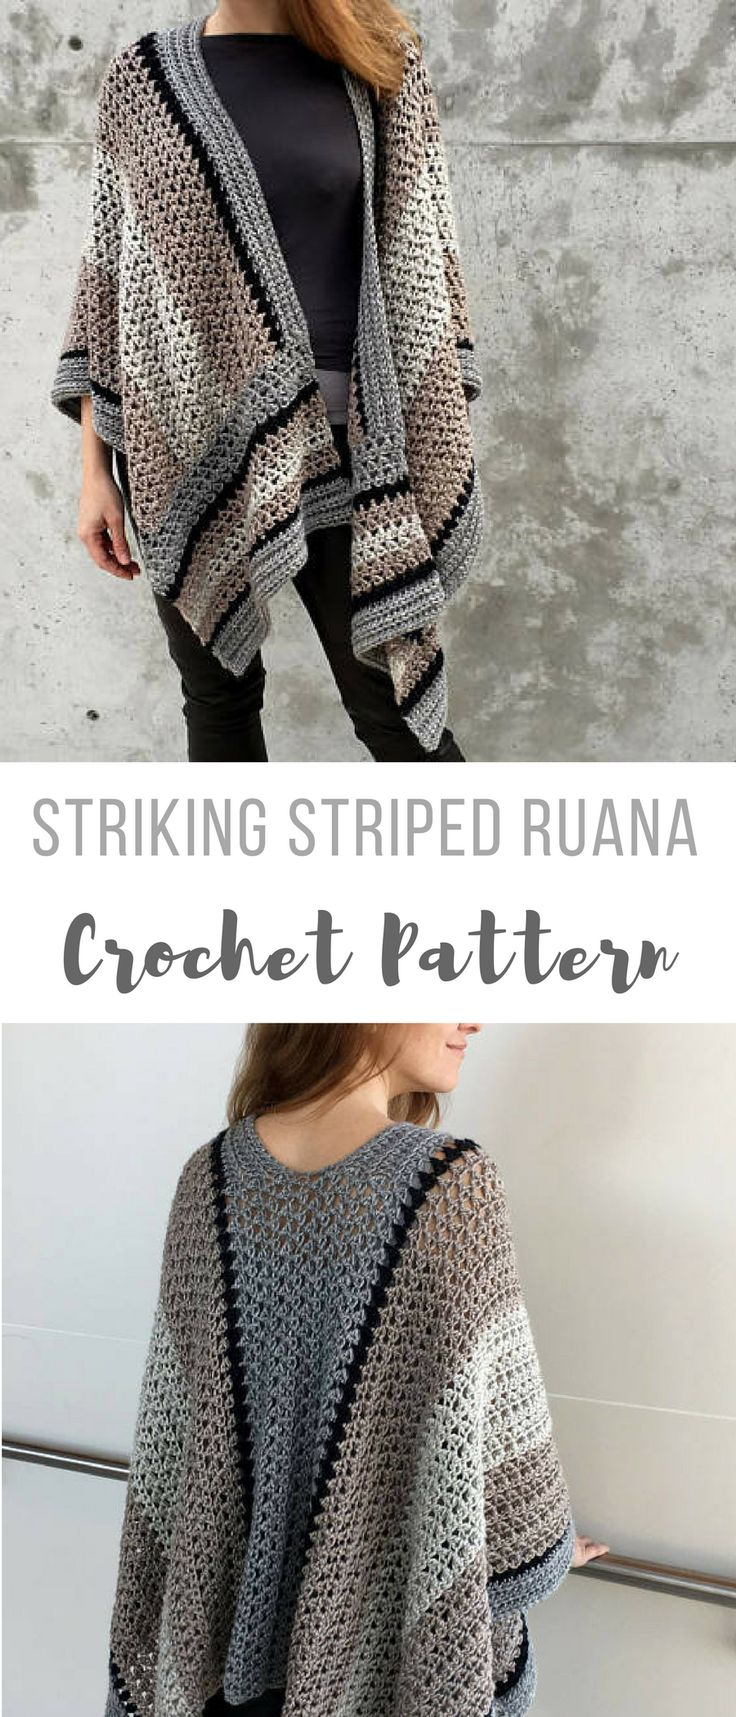 954 best Schals und Tücher images on Pinterest | Knitting stitches ...